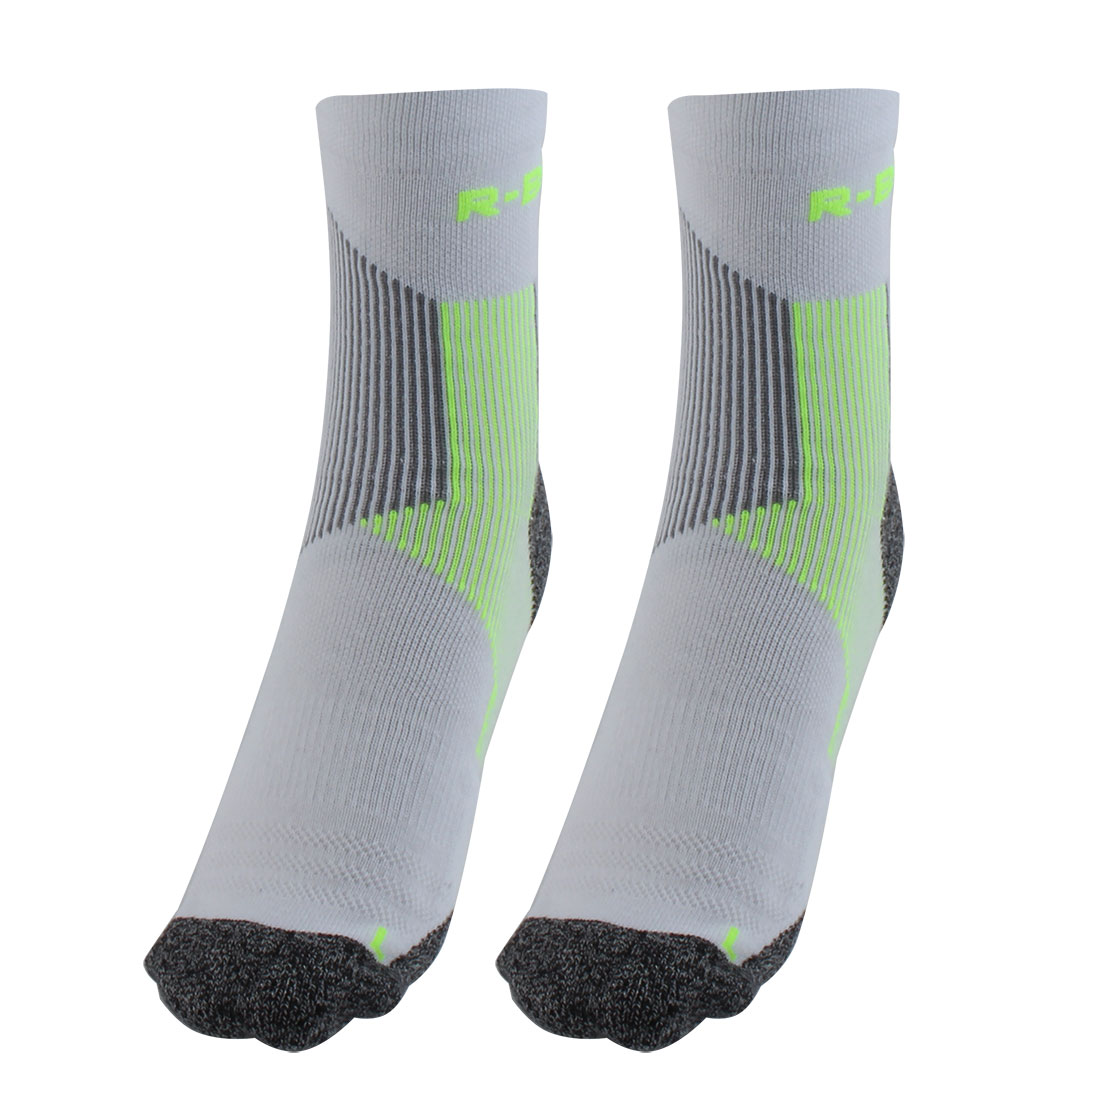 R-BAO Authorized Bicycle Jogging Mountain Bike Cotton Blend Compression Sports Cycling Socks Fluorescent Green L